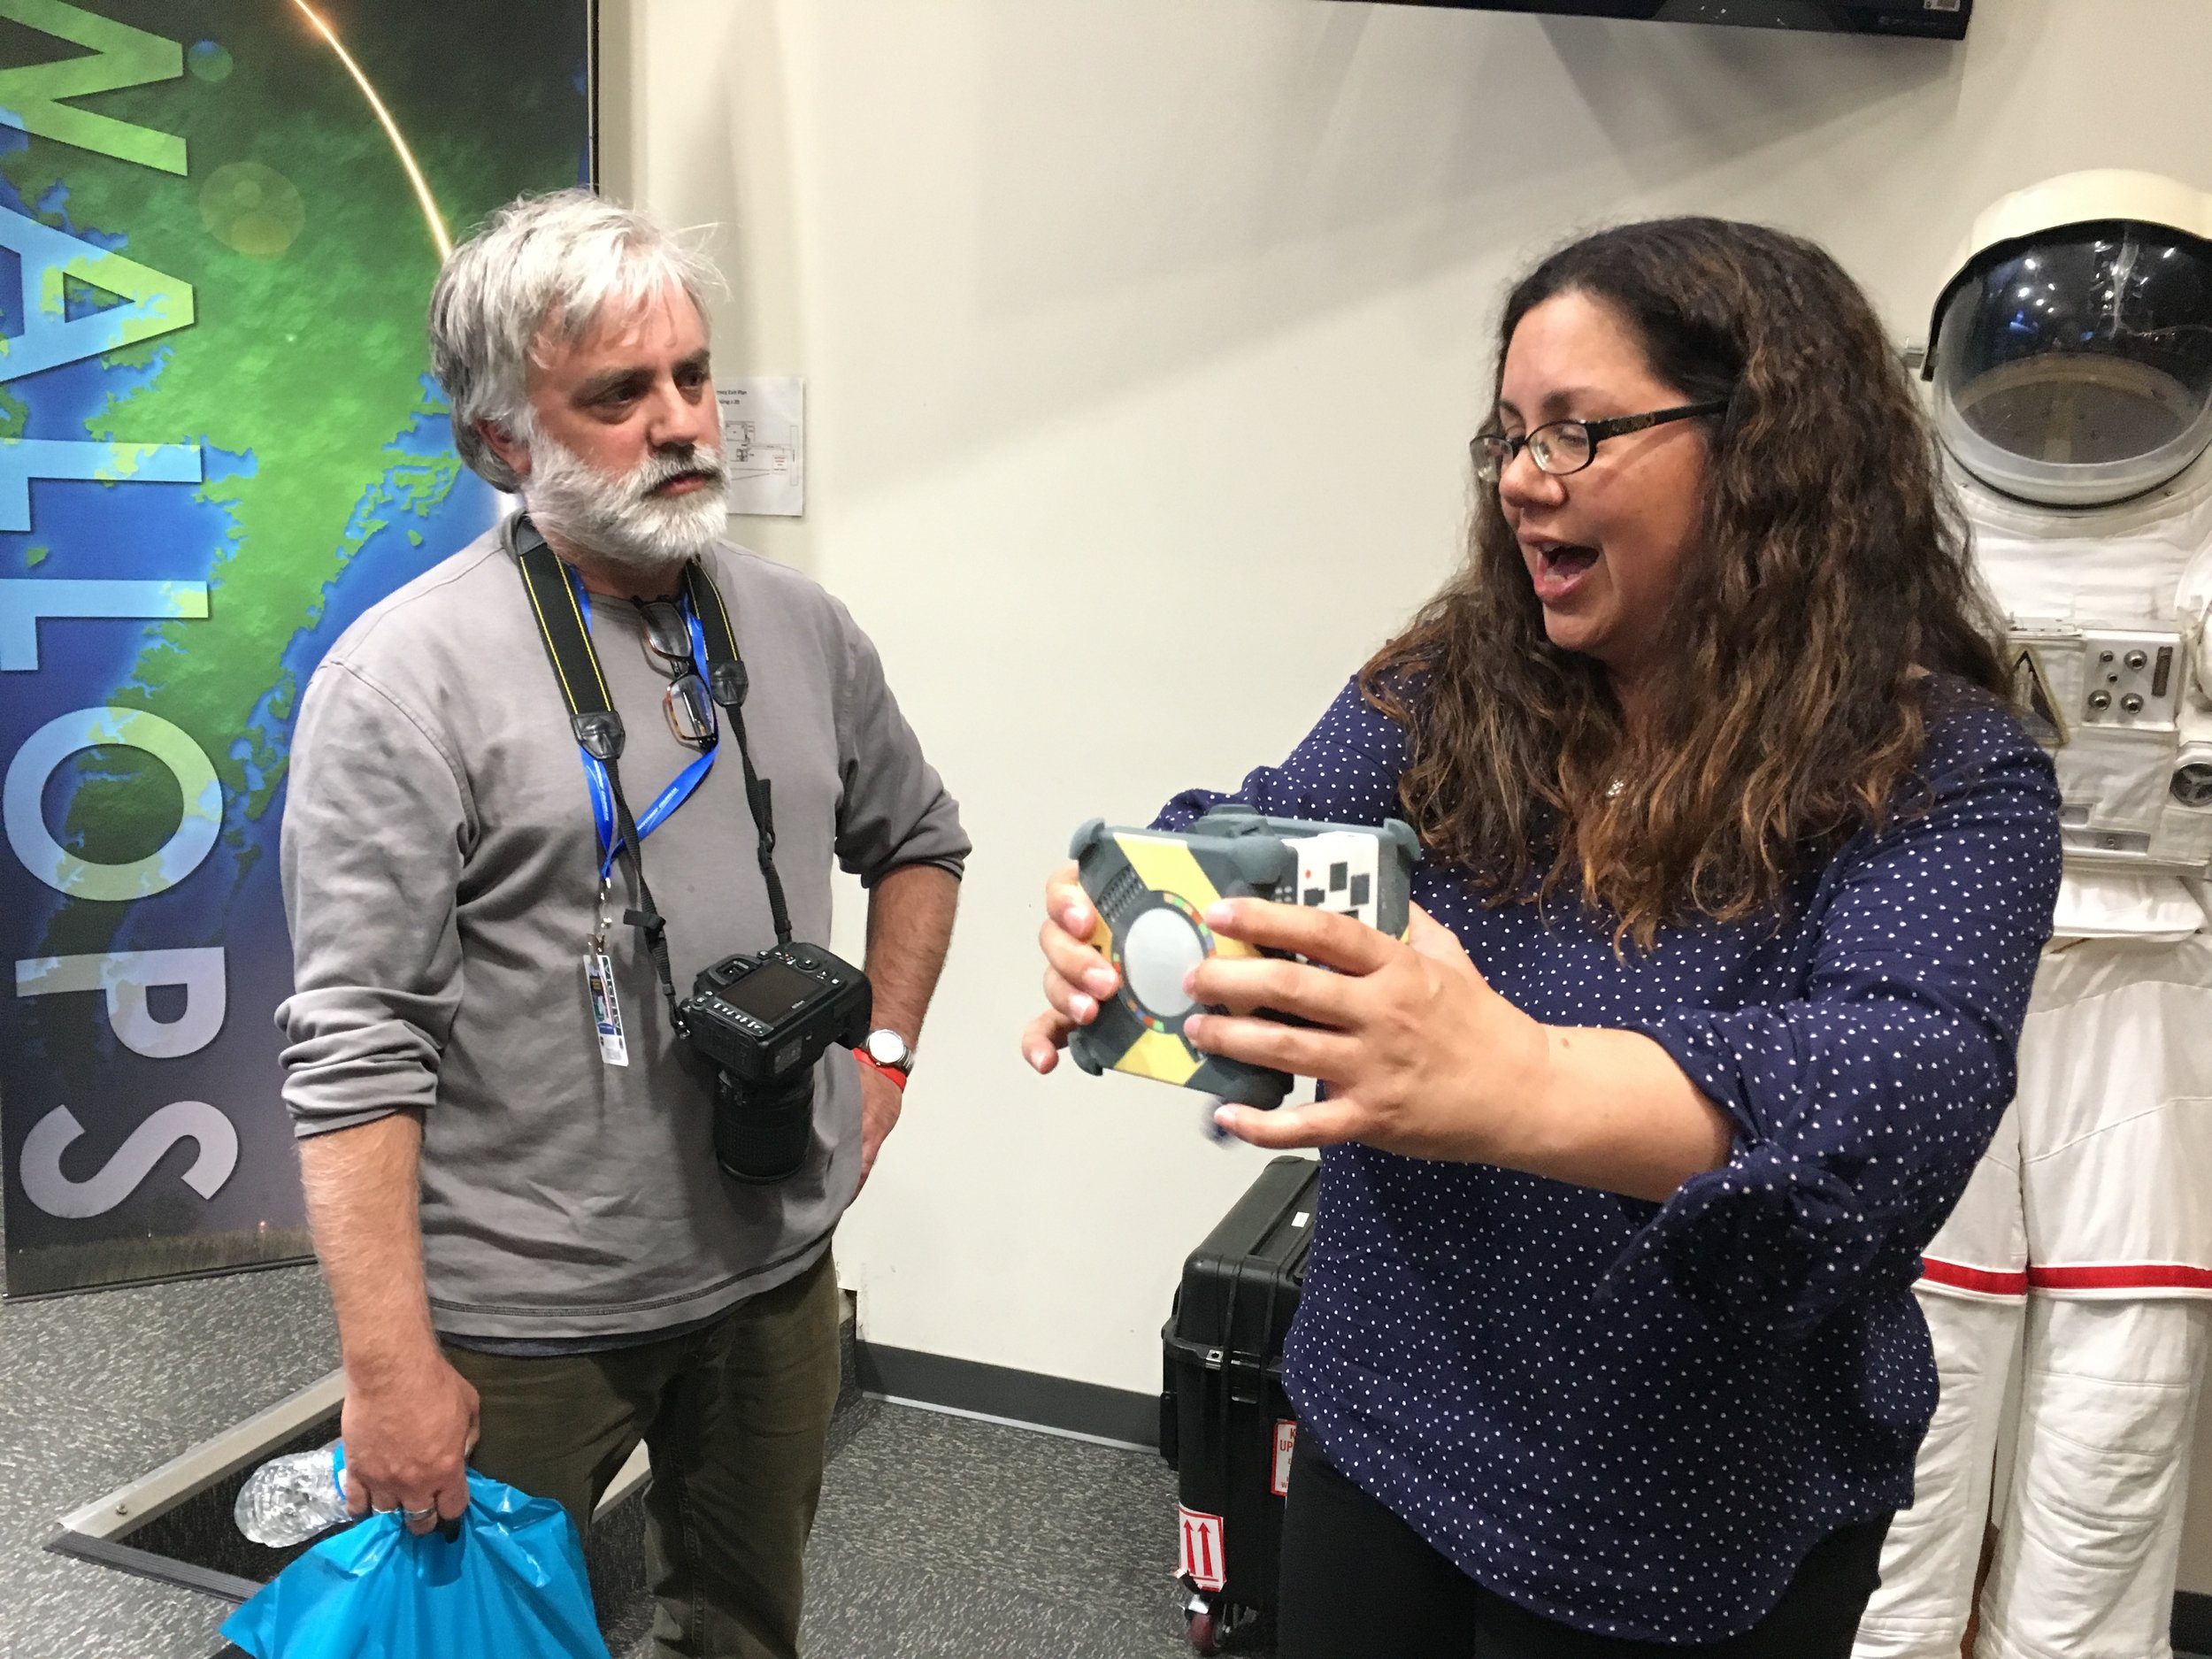 Maria Bualat of NASA Ames answers questions about an Astrobee model to a media member.